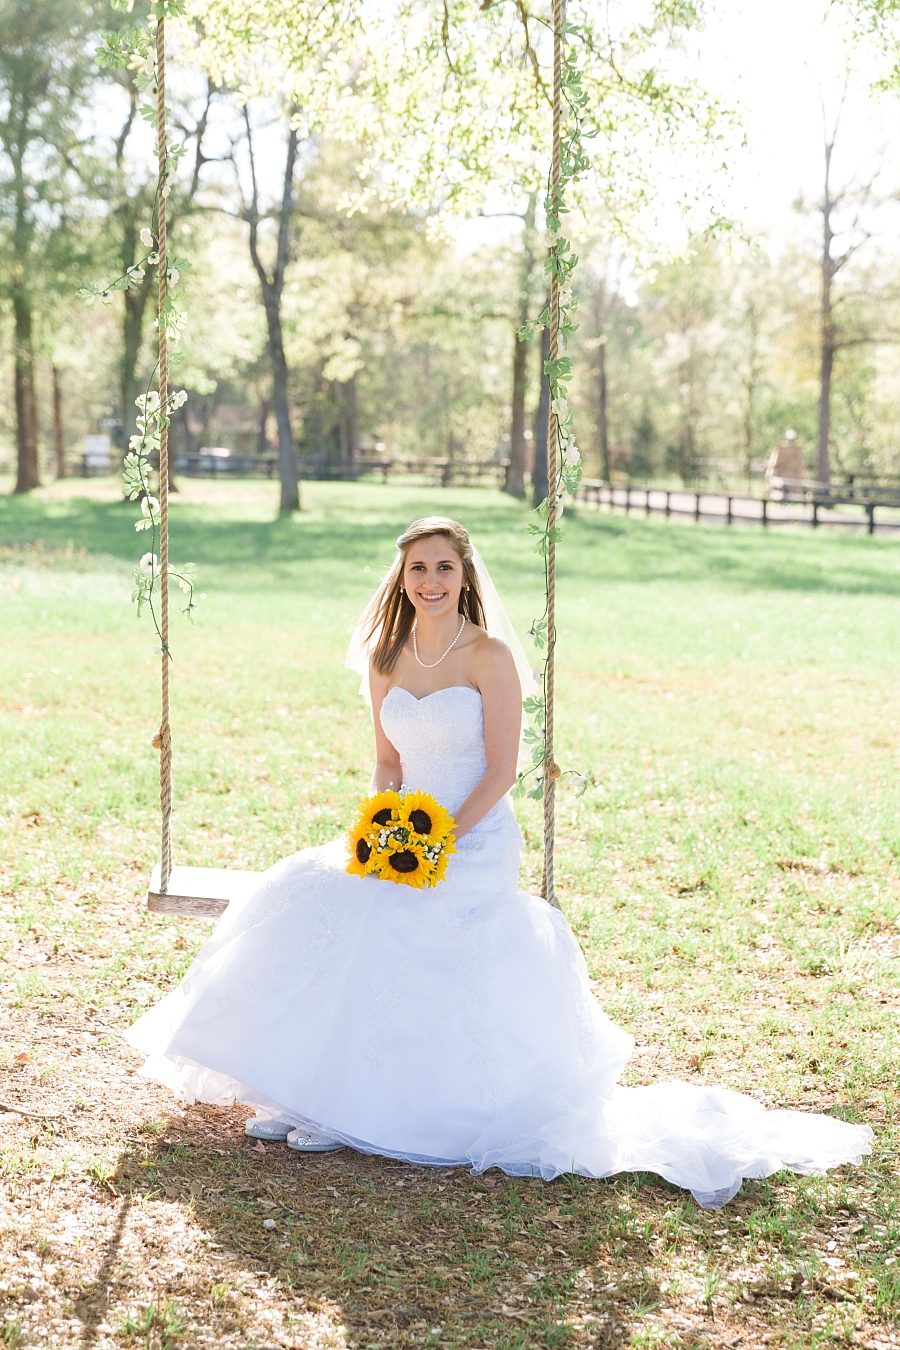 Stacy-Anderson-Photography-Carriage-House-Houston-Wedding-Photographer_0004.jpg